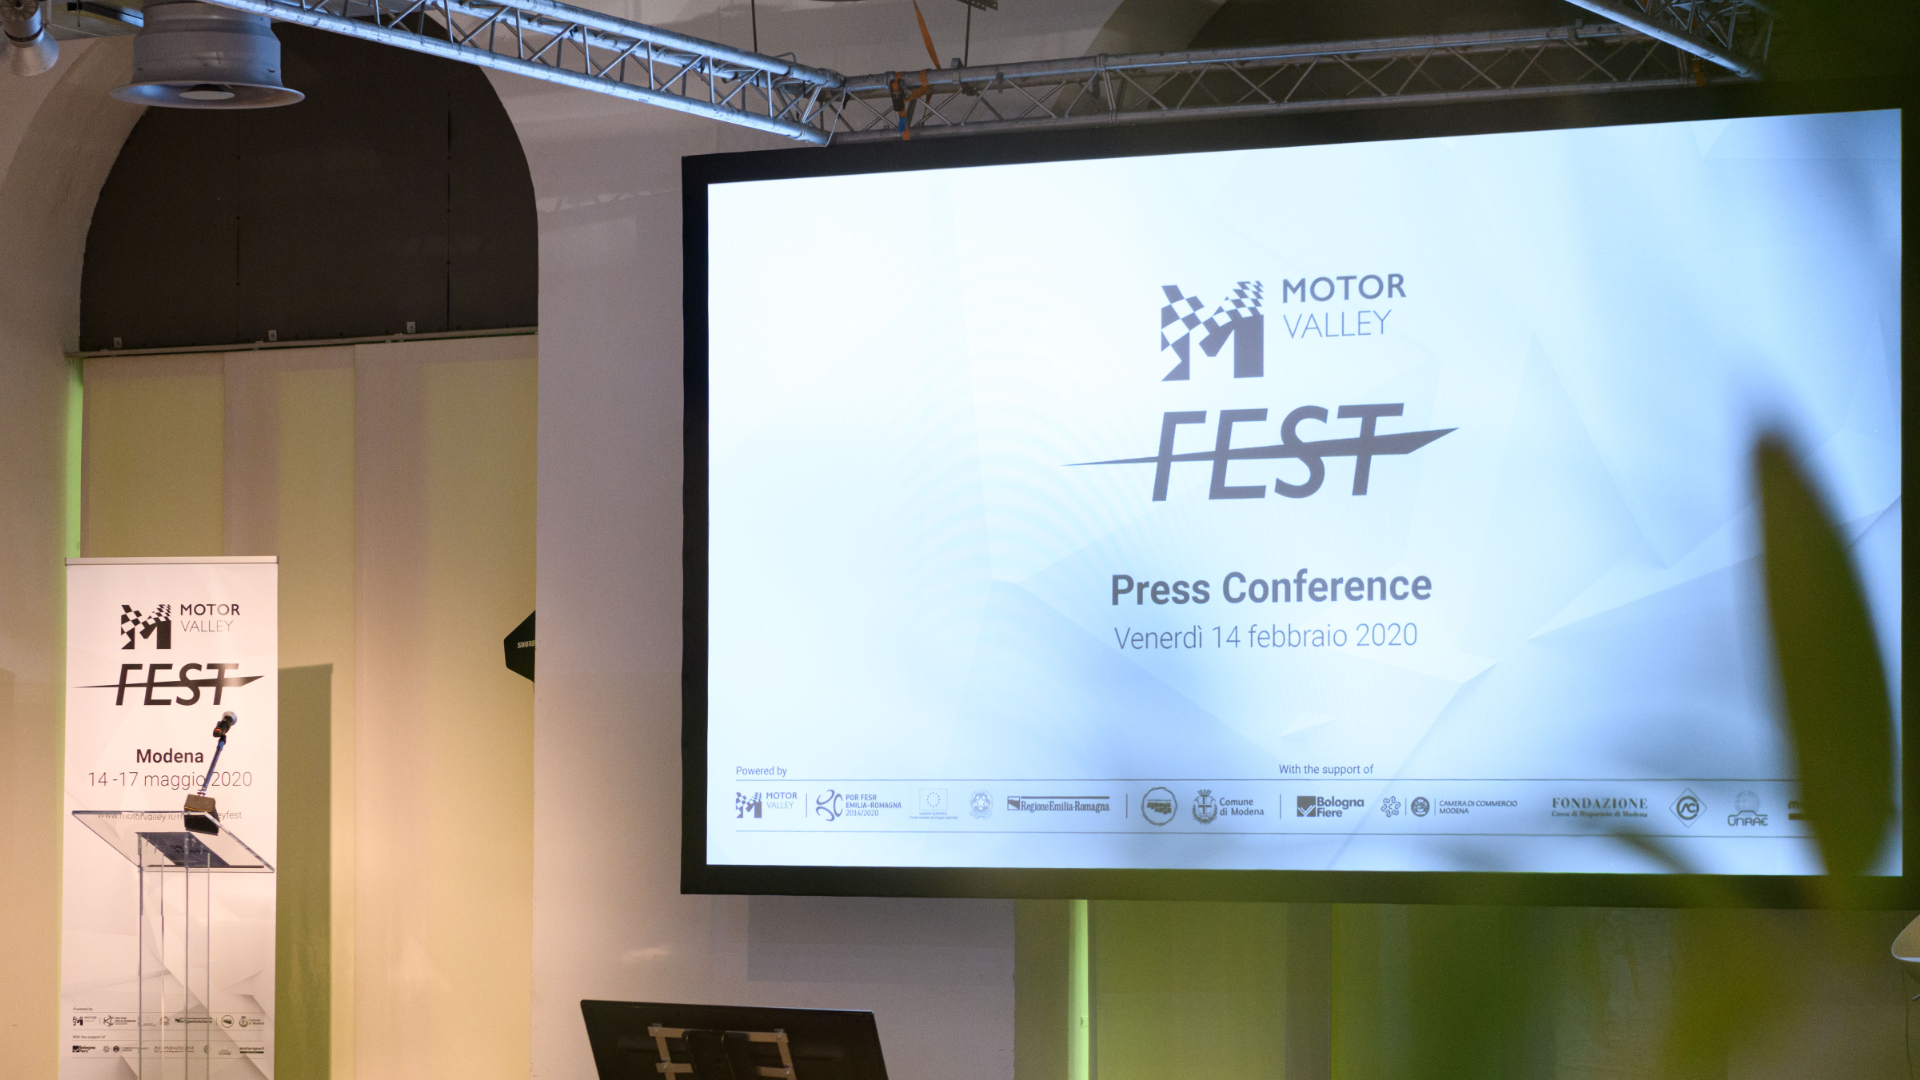 Motor Valley Fest: the second edition of the popular festival returns to Modena from May 14-17.